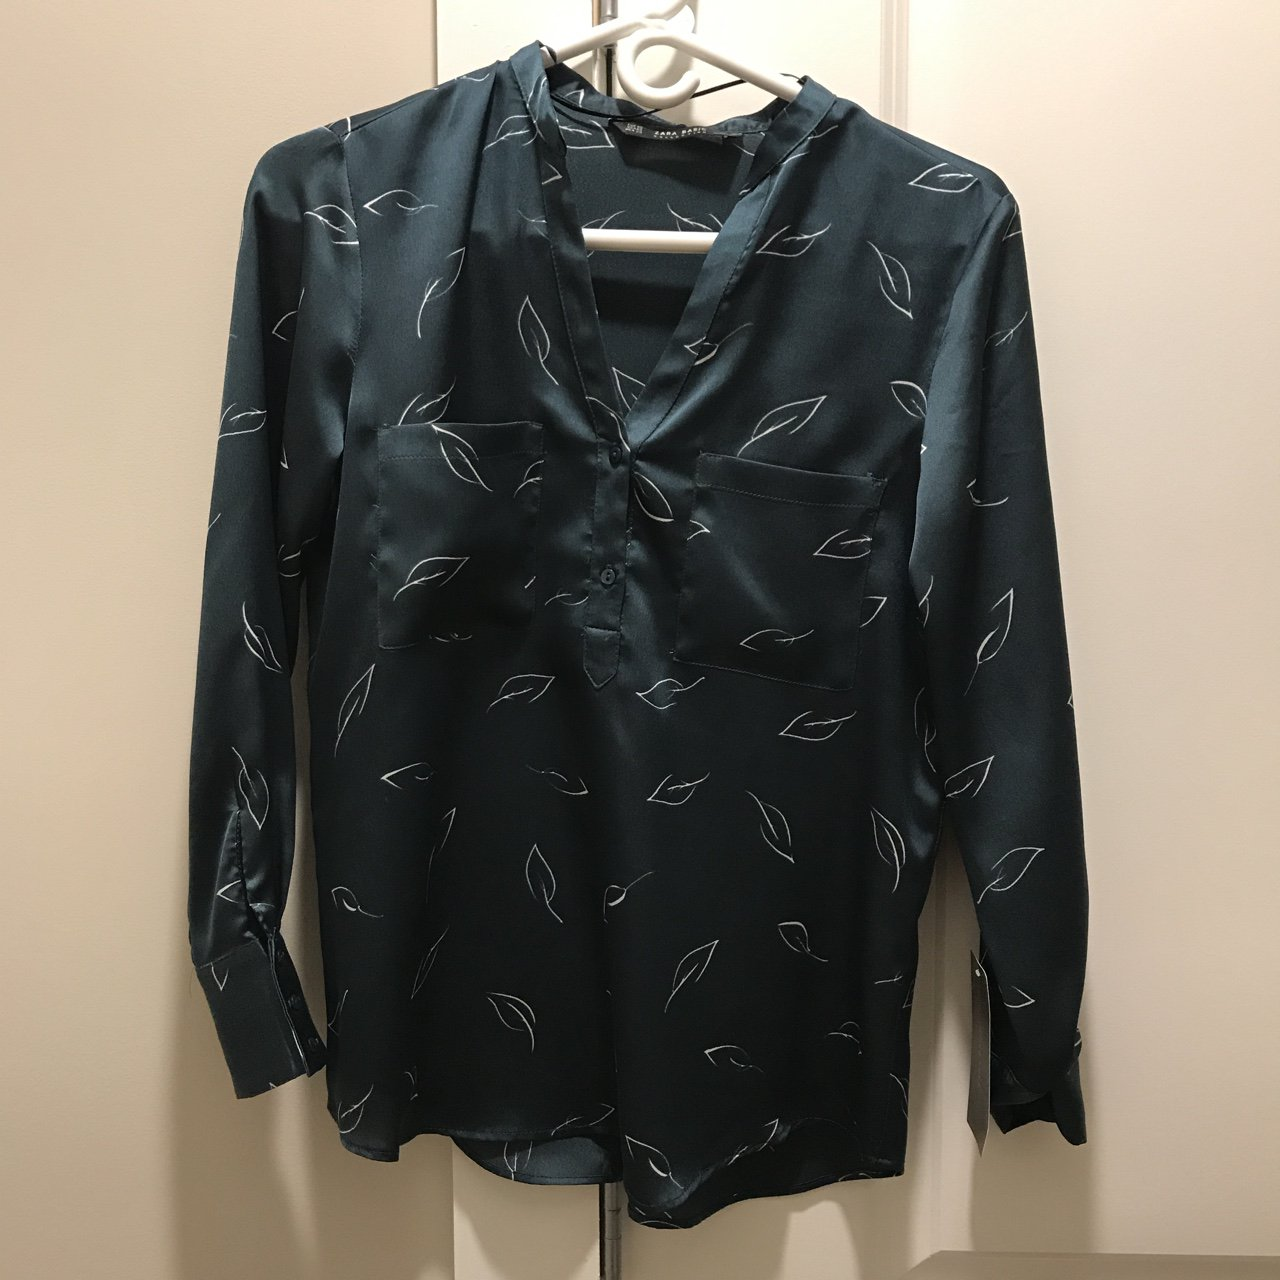 36a8b5bf4c Beautiful brand new Zara satin blouse. Size  XS Worn once. - Depop